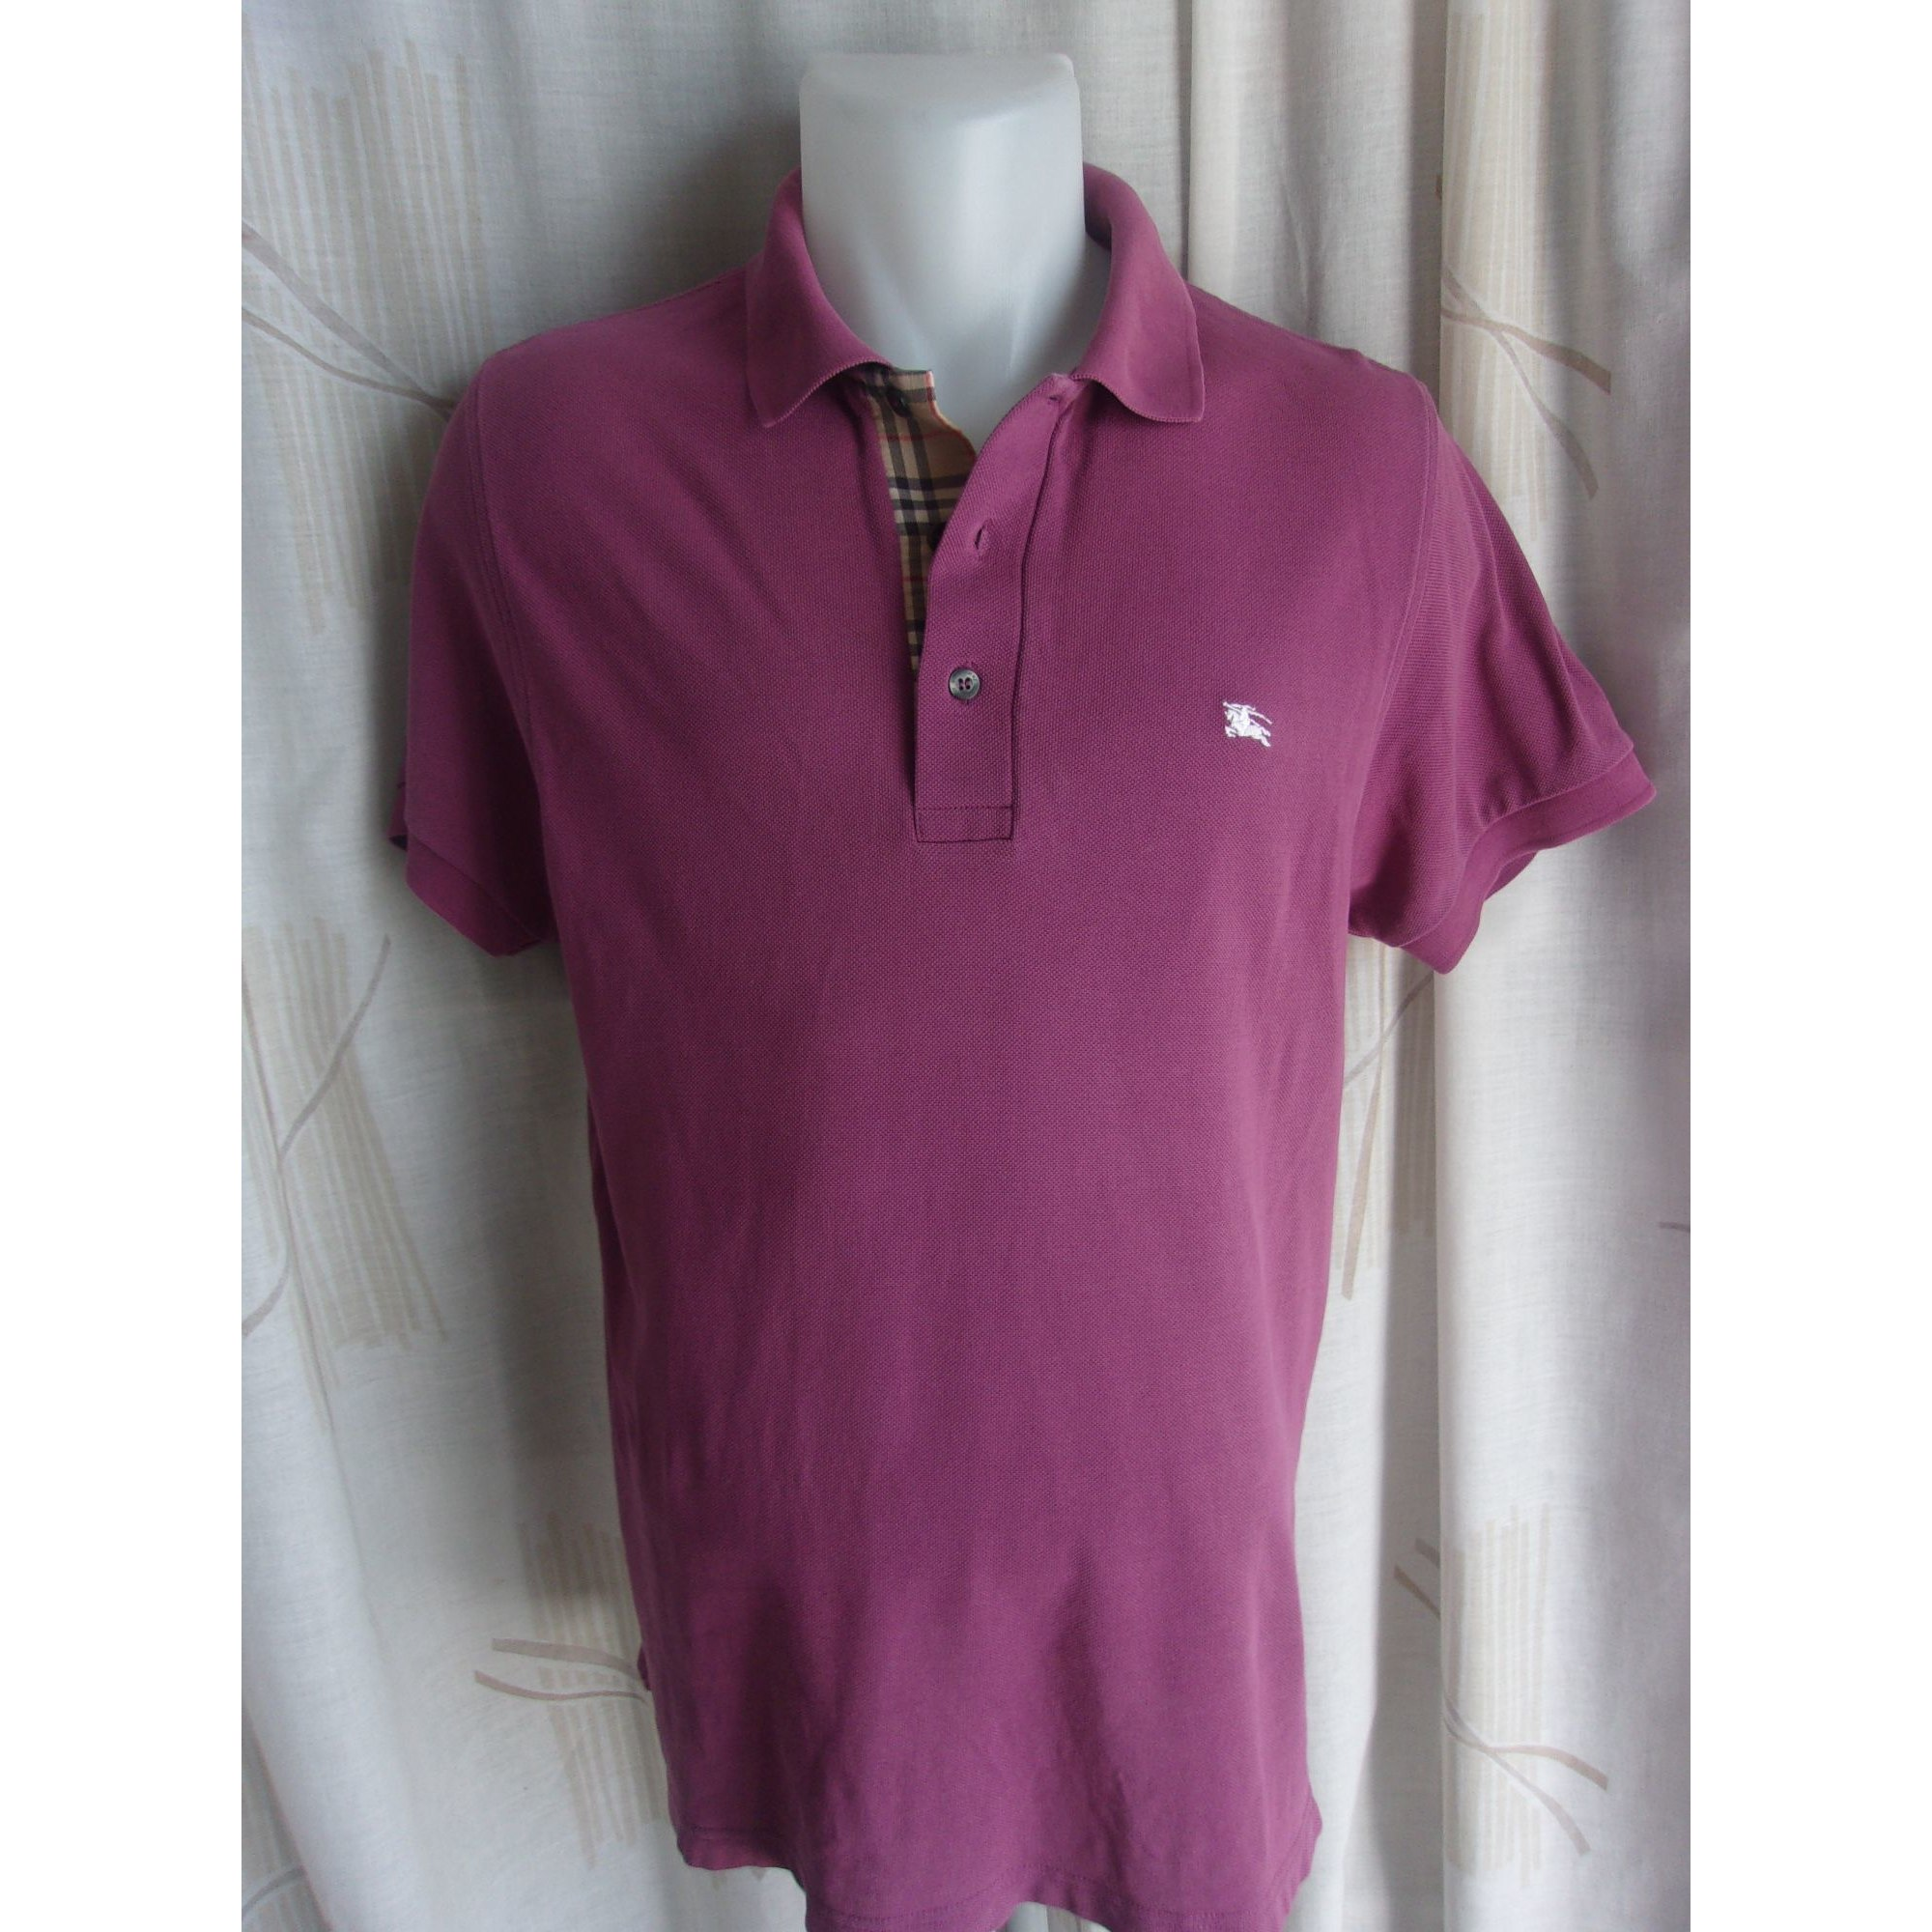 fba04f9559ff Polo BURBERRY 2 (M) violet vendu par France mode - 7897780